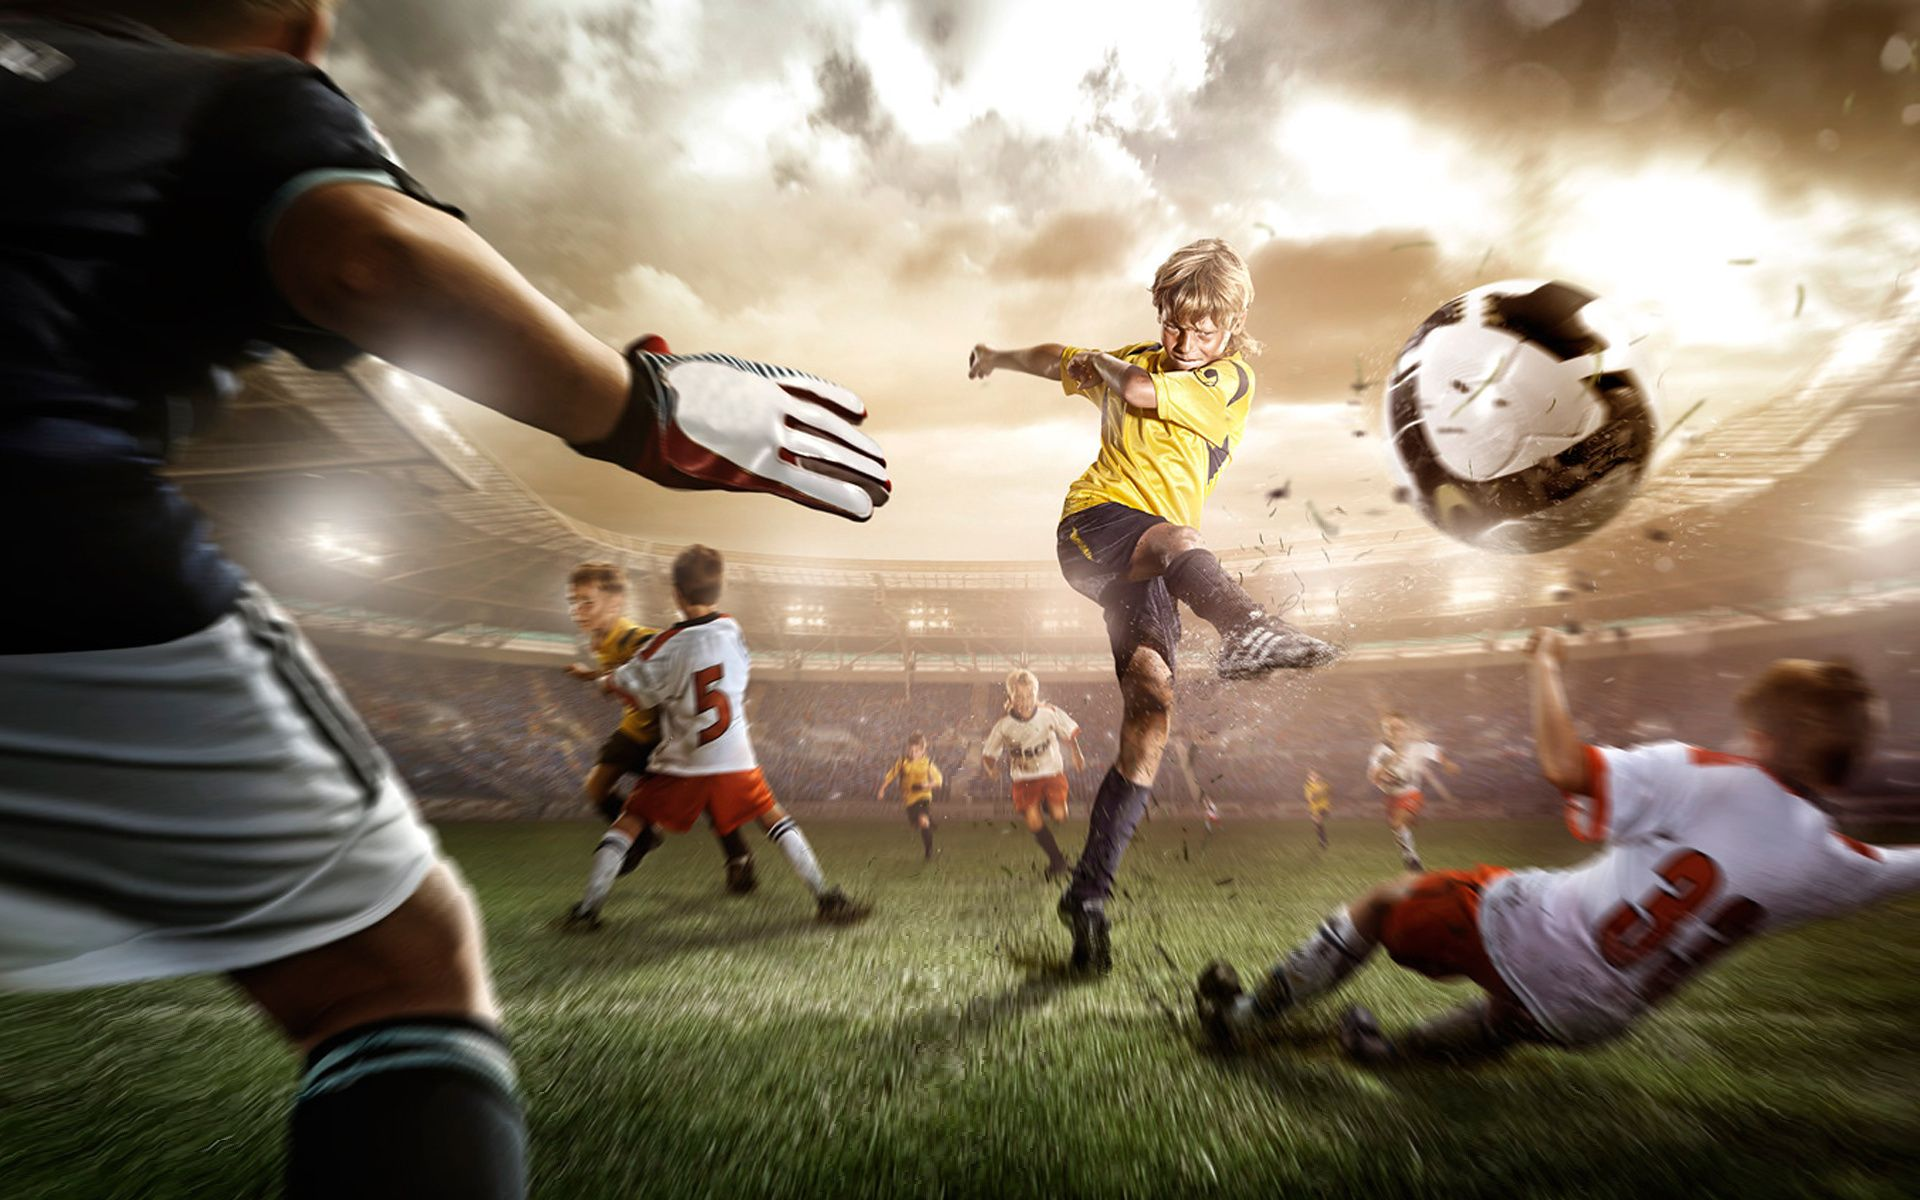 Football Wallpaper Sport Kids Hd Desktop Cool Wallpaper 3d Widescreen Images In 2020 Sports Wallpapers Kids Sports Football Kids